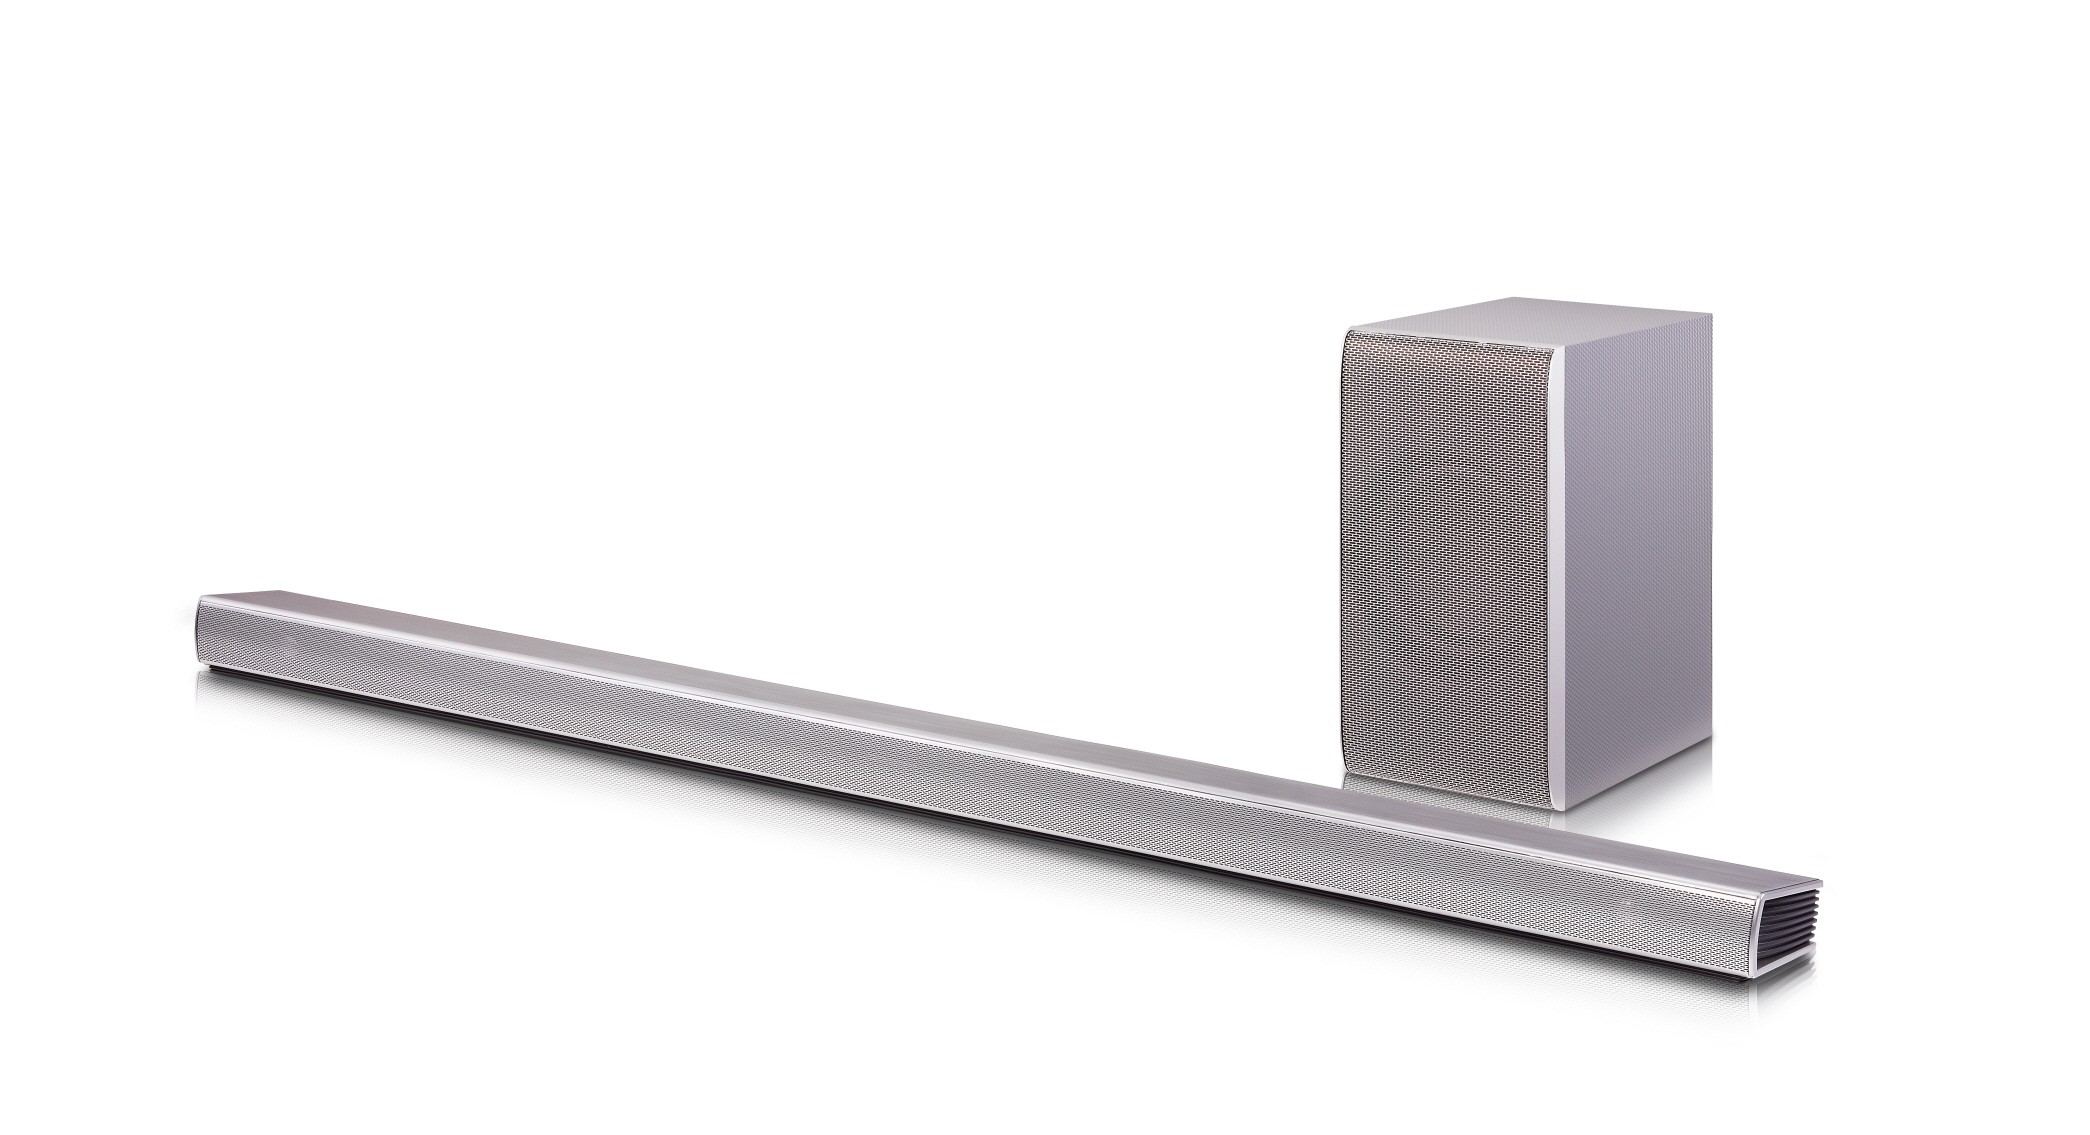 The LG 2016 Soundbar SH8 in front of a wireless subwoofer